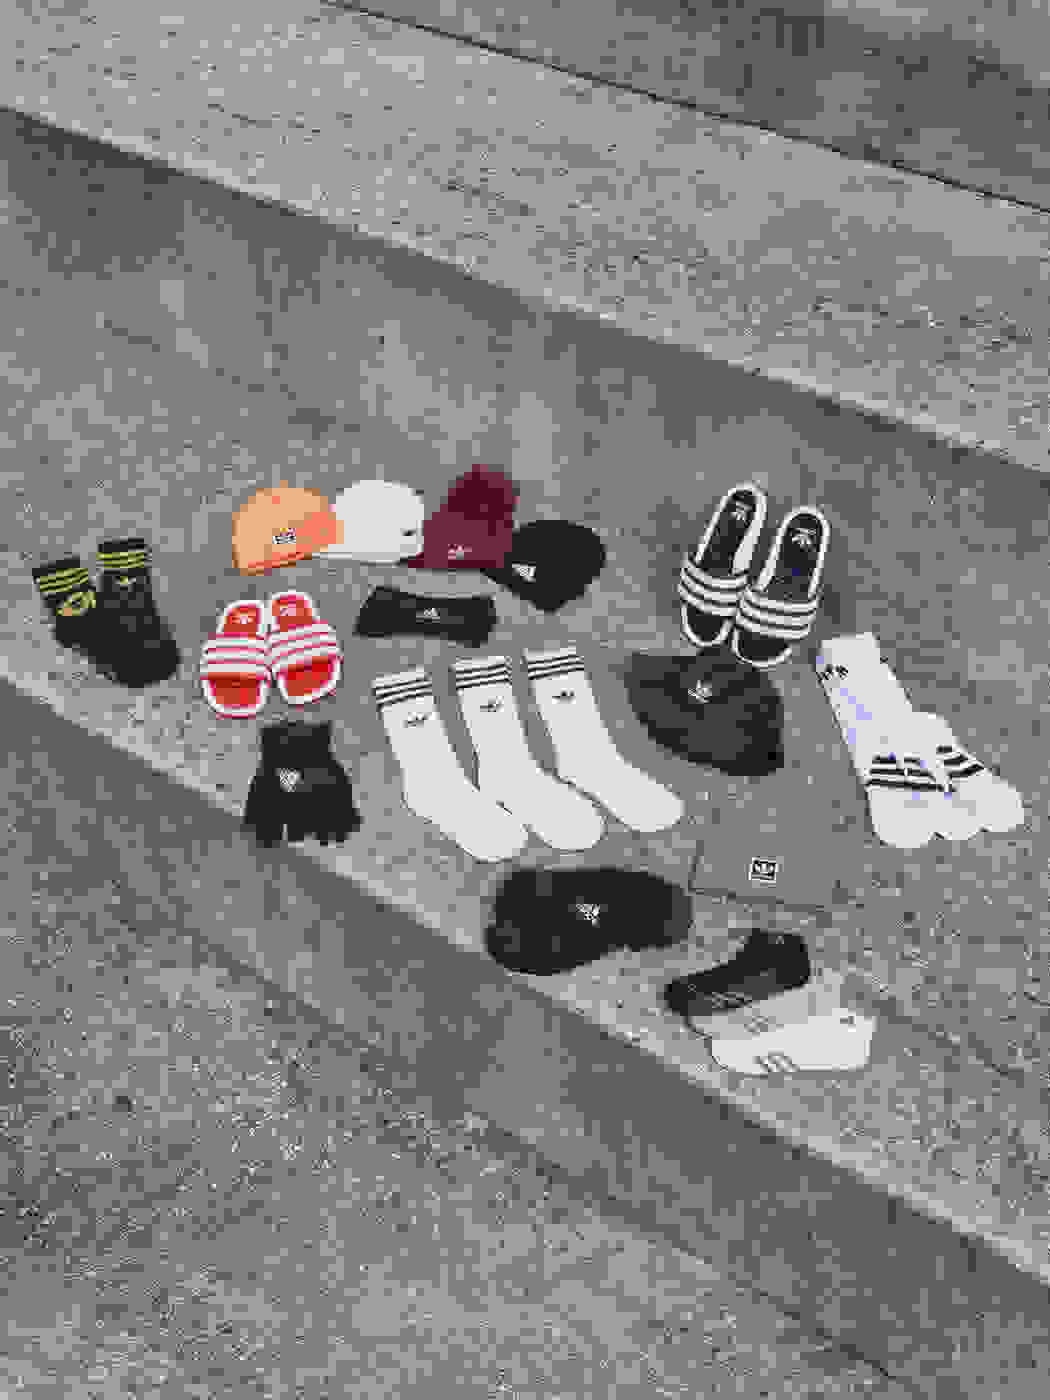 Three pairs of gloves and a beanie hat displayed together on a grass football field.